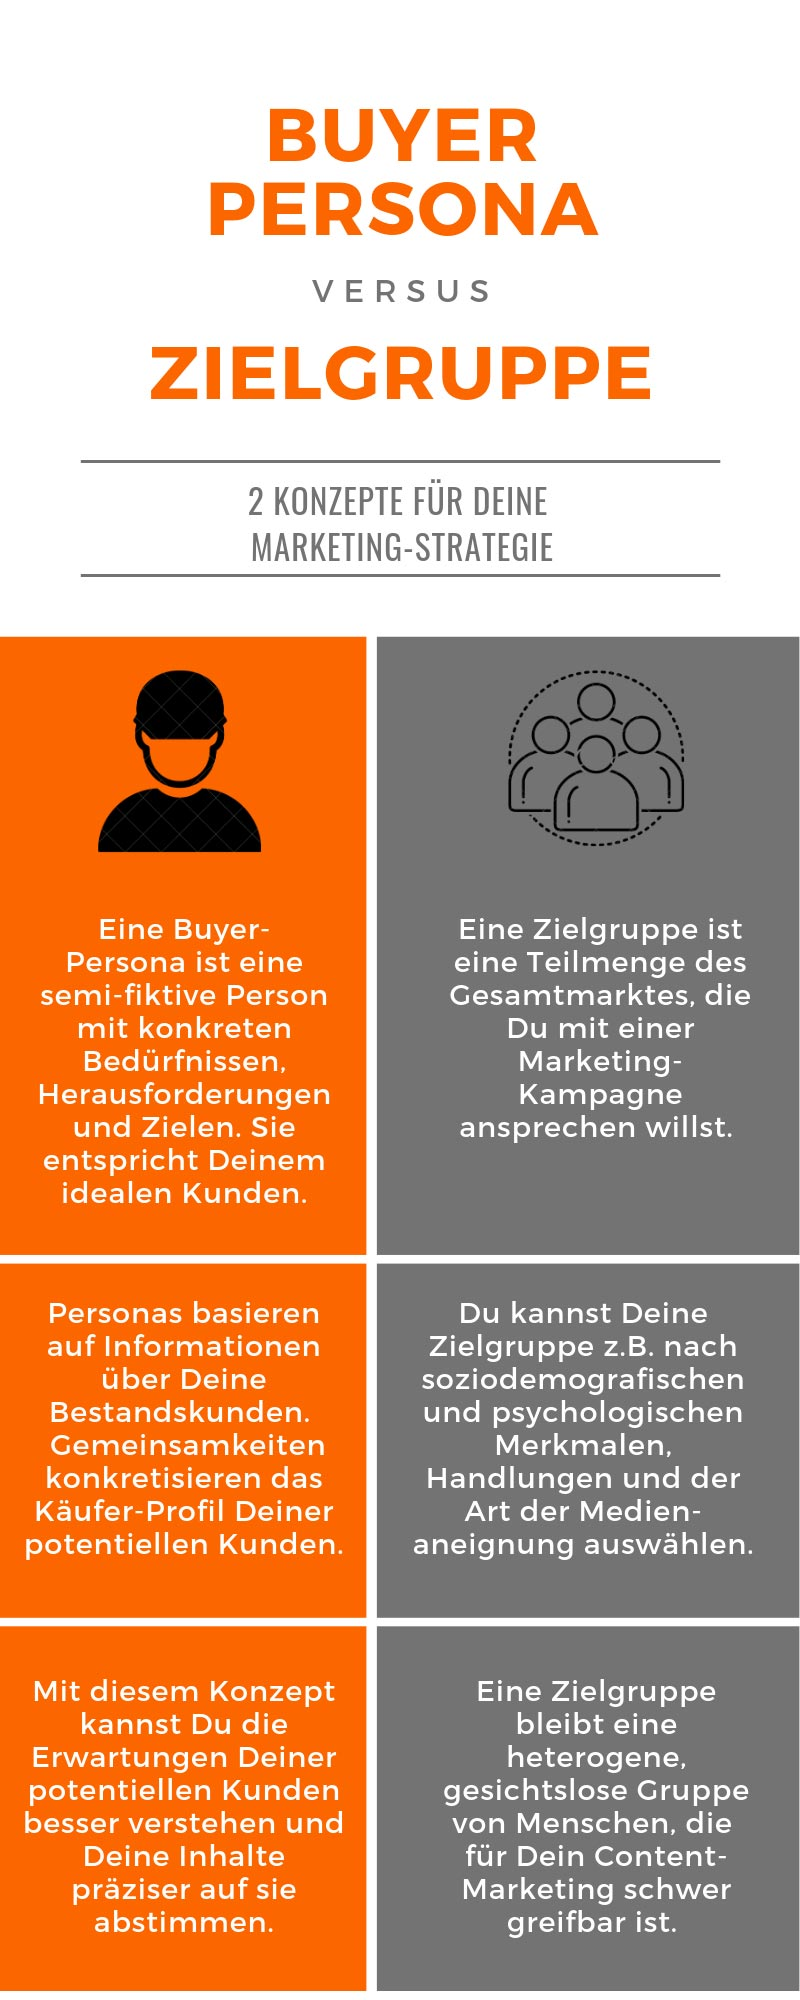 Zielgruppe vs. Buyer Persona